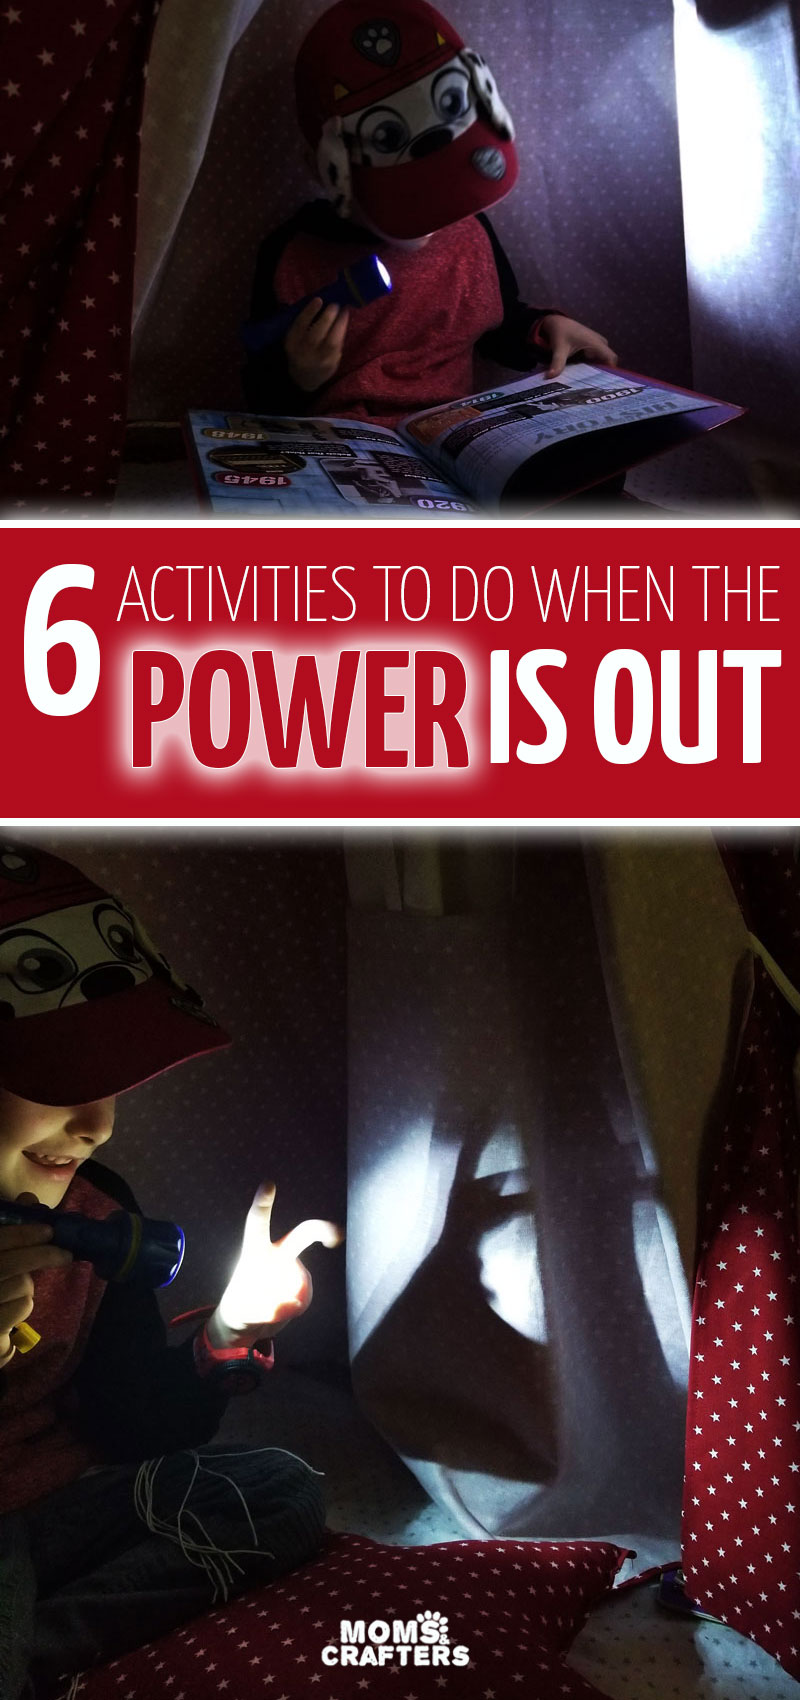 Click for 6 fun and easy activities for kids for when the power is out! These fun ideas are super easy and include survival tips for moms during power outages, storms, hurricanes, and blackouts.